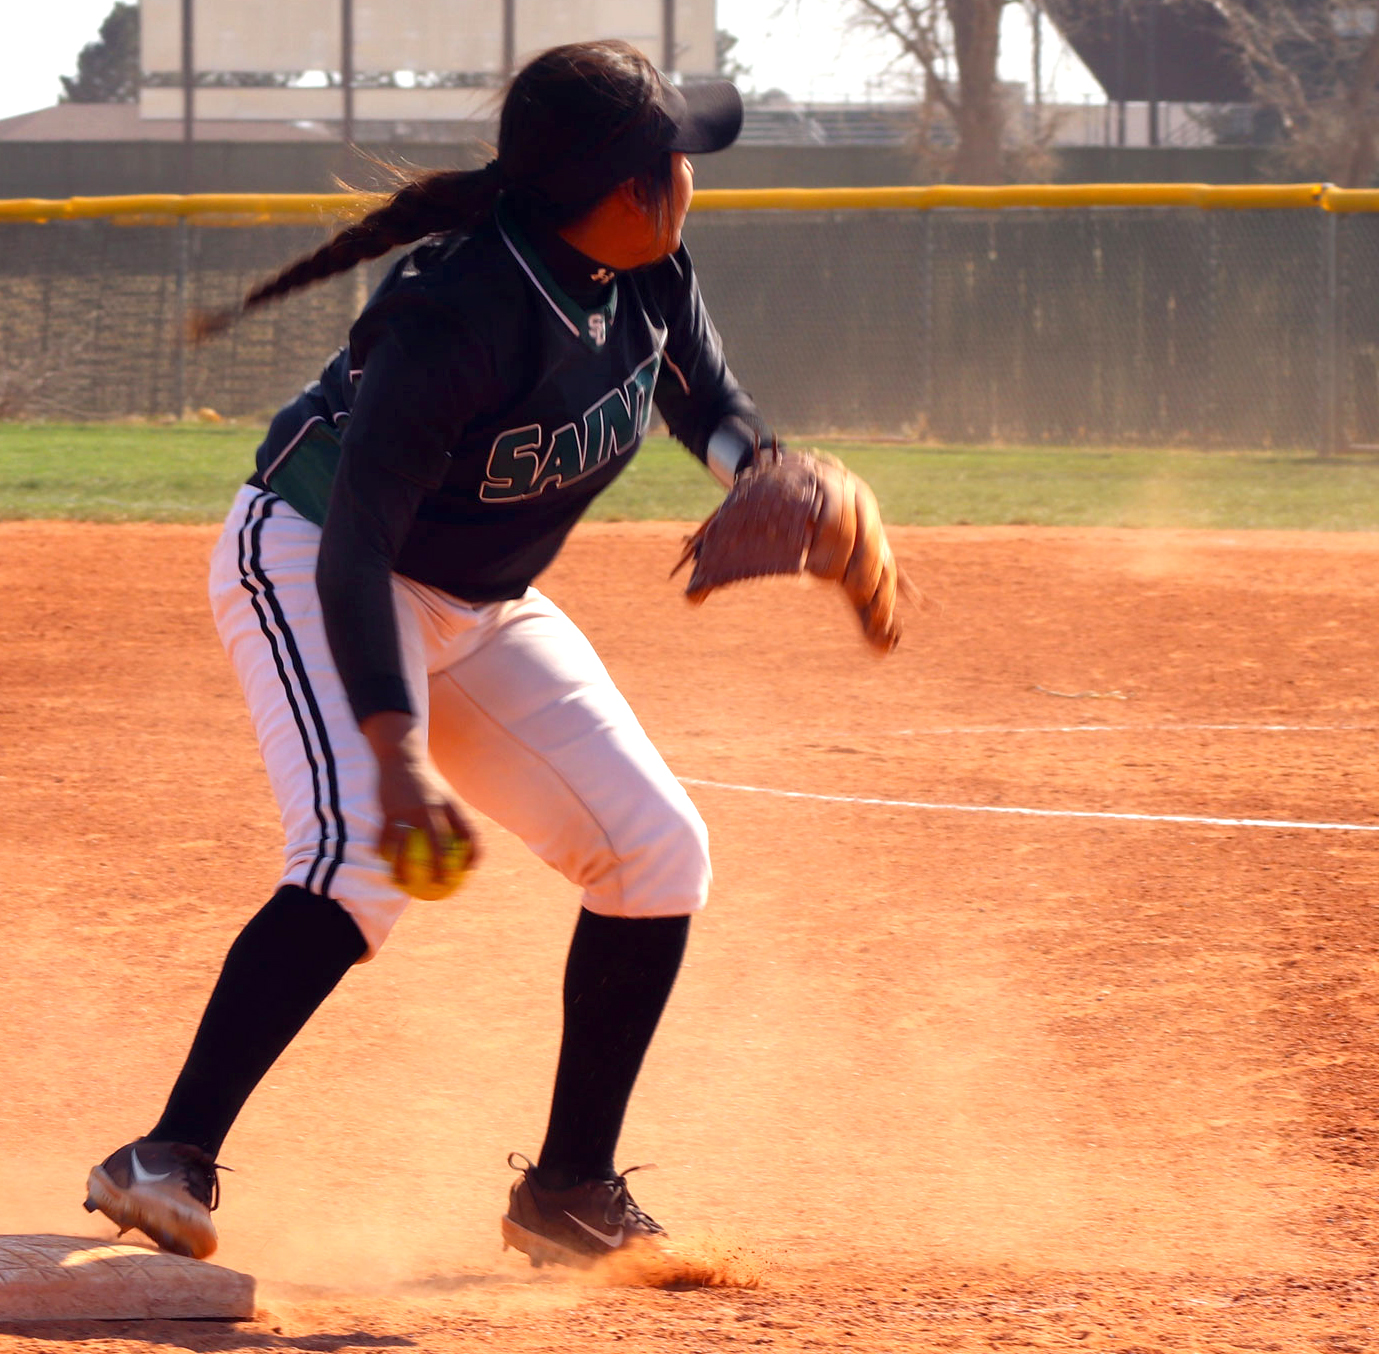 Corrina+Porras%2C+freshman+from+Colorado+Springs%2C+Colorado%2C+got+an+out+in+third+base.++Porras+threw+the+ball+to+first+base+where+they+got+another+out.